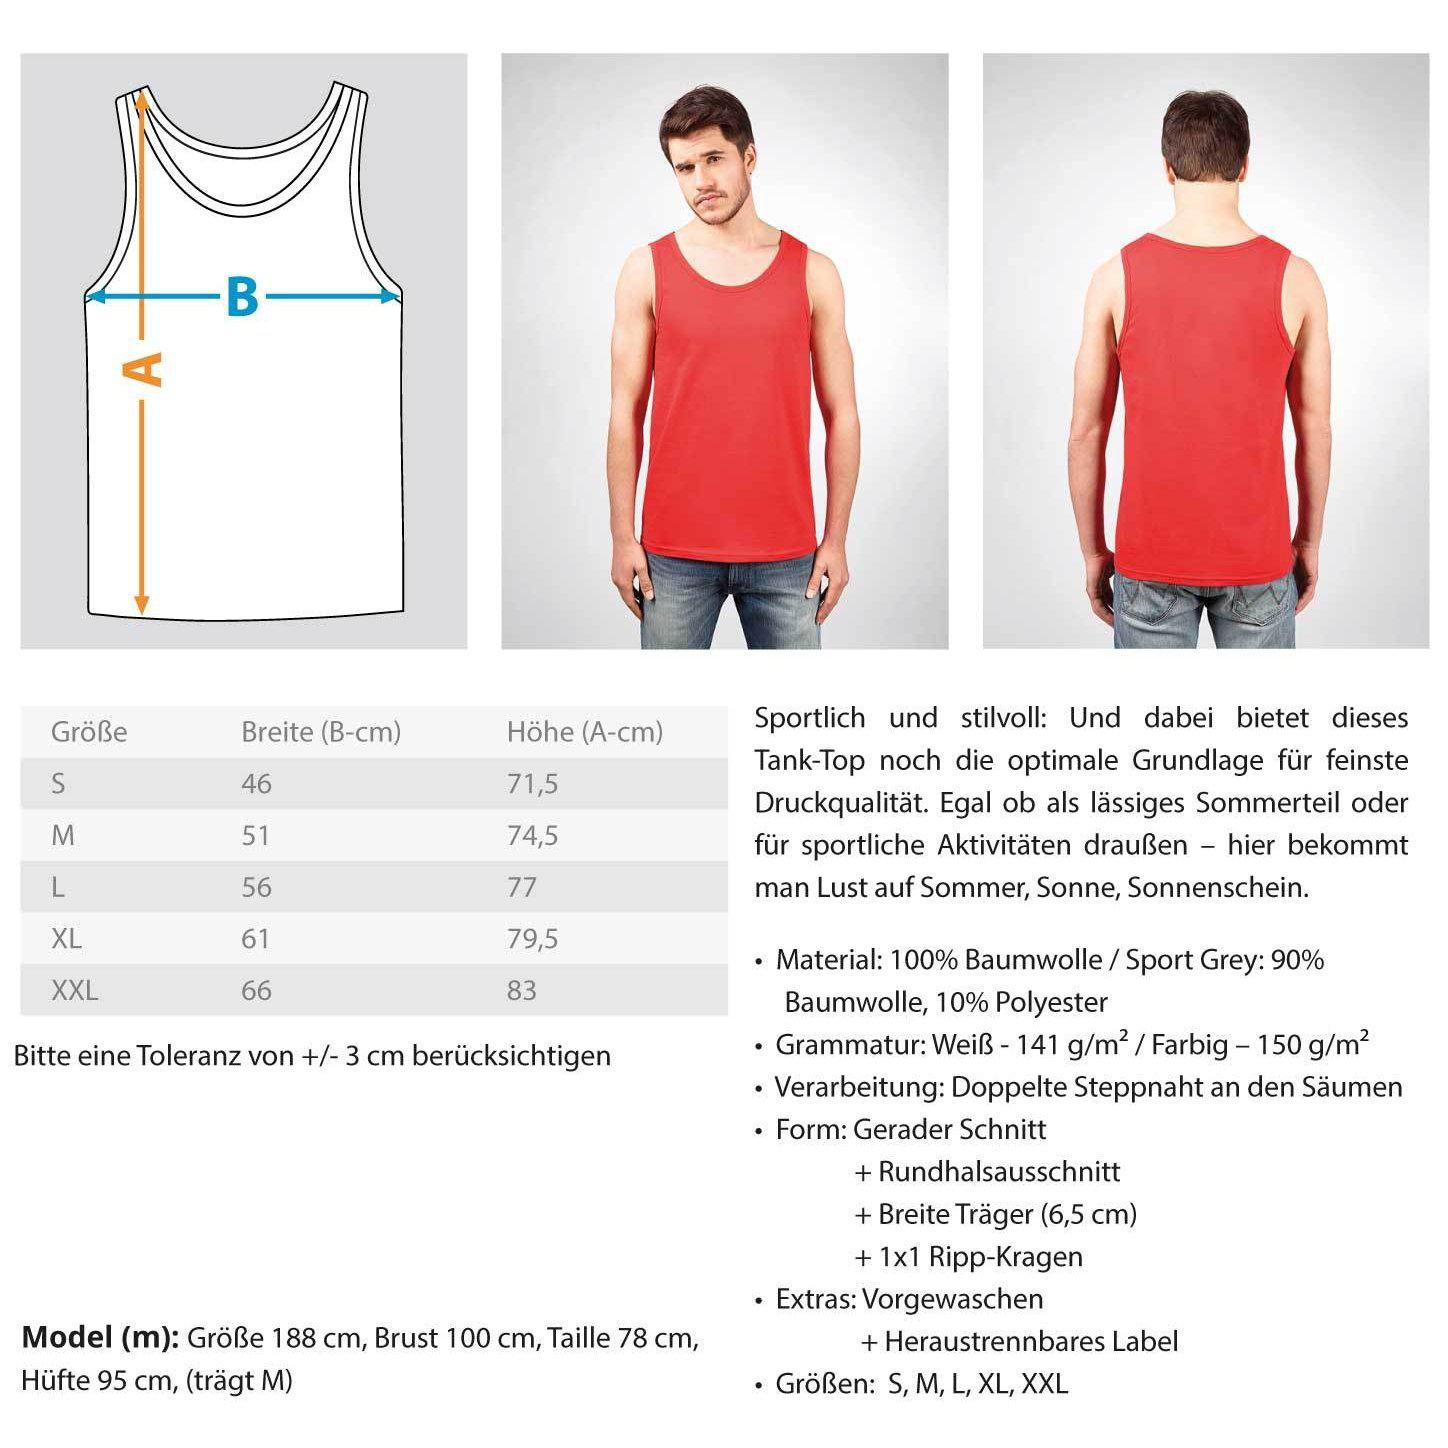 KING OF LINES - Rave On!® - Herren Tanktop Herren Tank-Top - Rave On!® der Club & Techno Szene Shop für Coole Junge Mode Streetwear Style & Fashion Outfits + Sexy Festival 420 Stuff